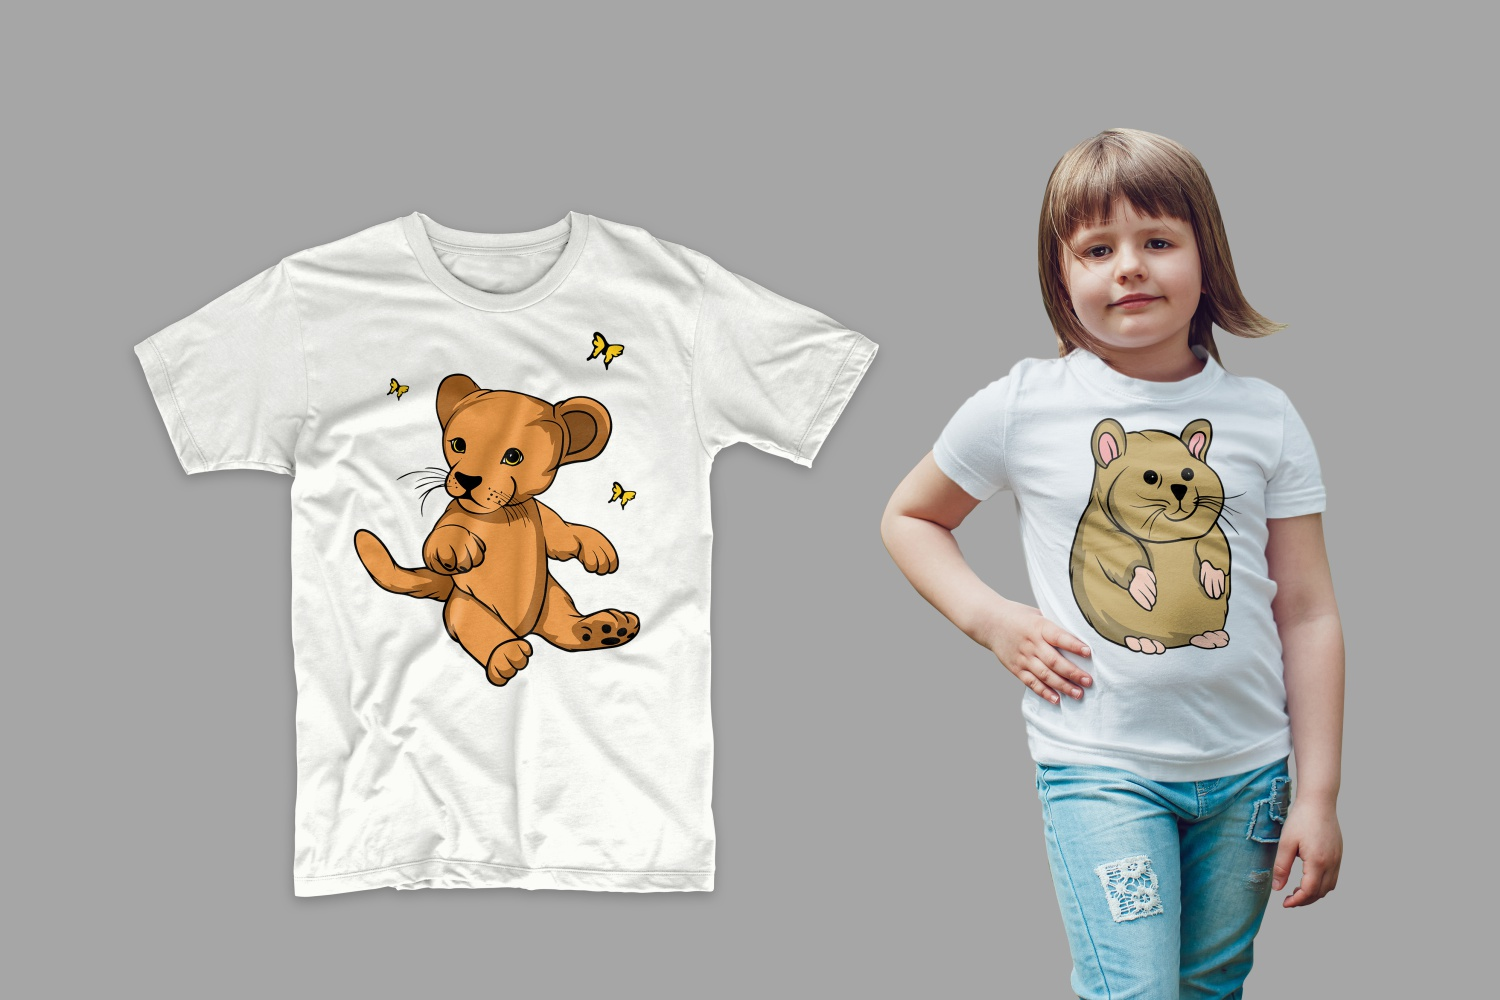 T-shirt with a lion cub on a girl.